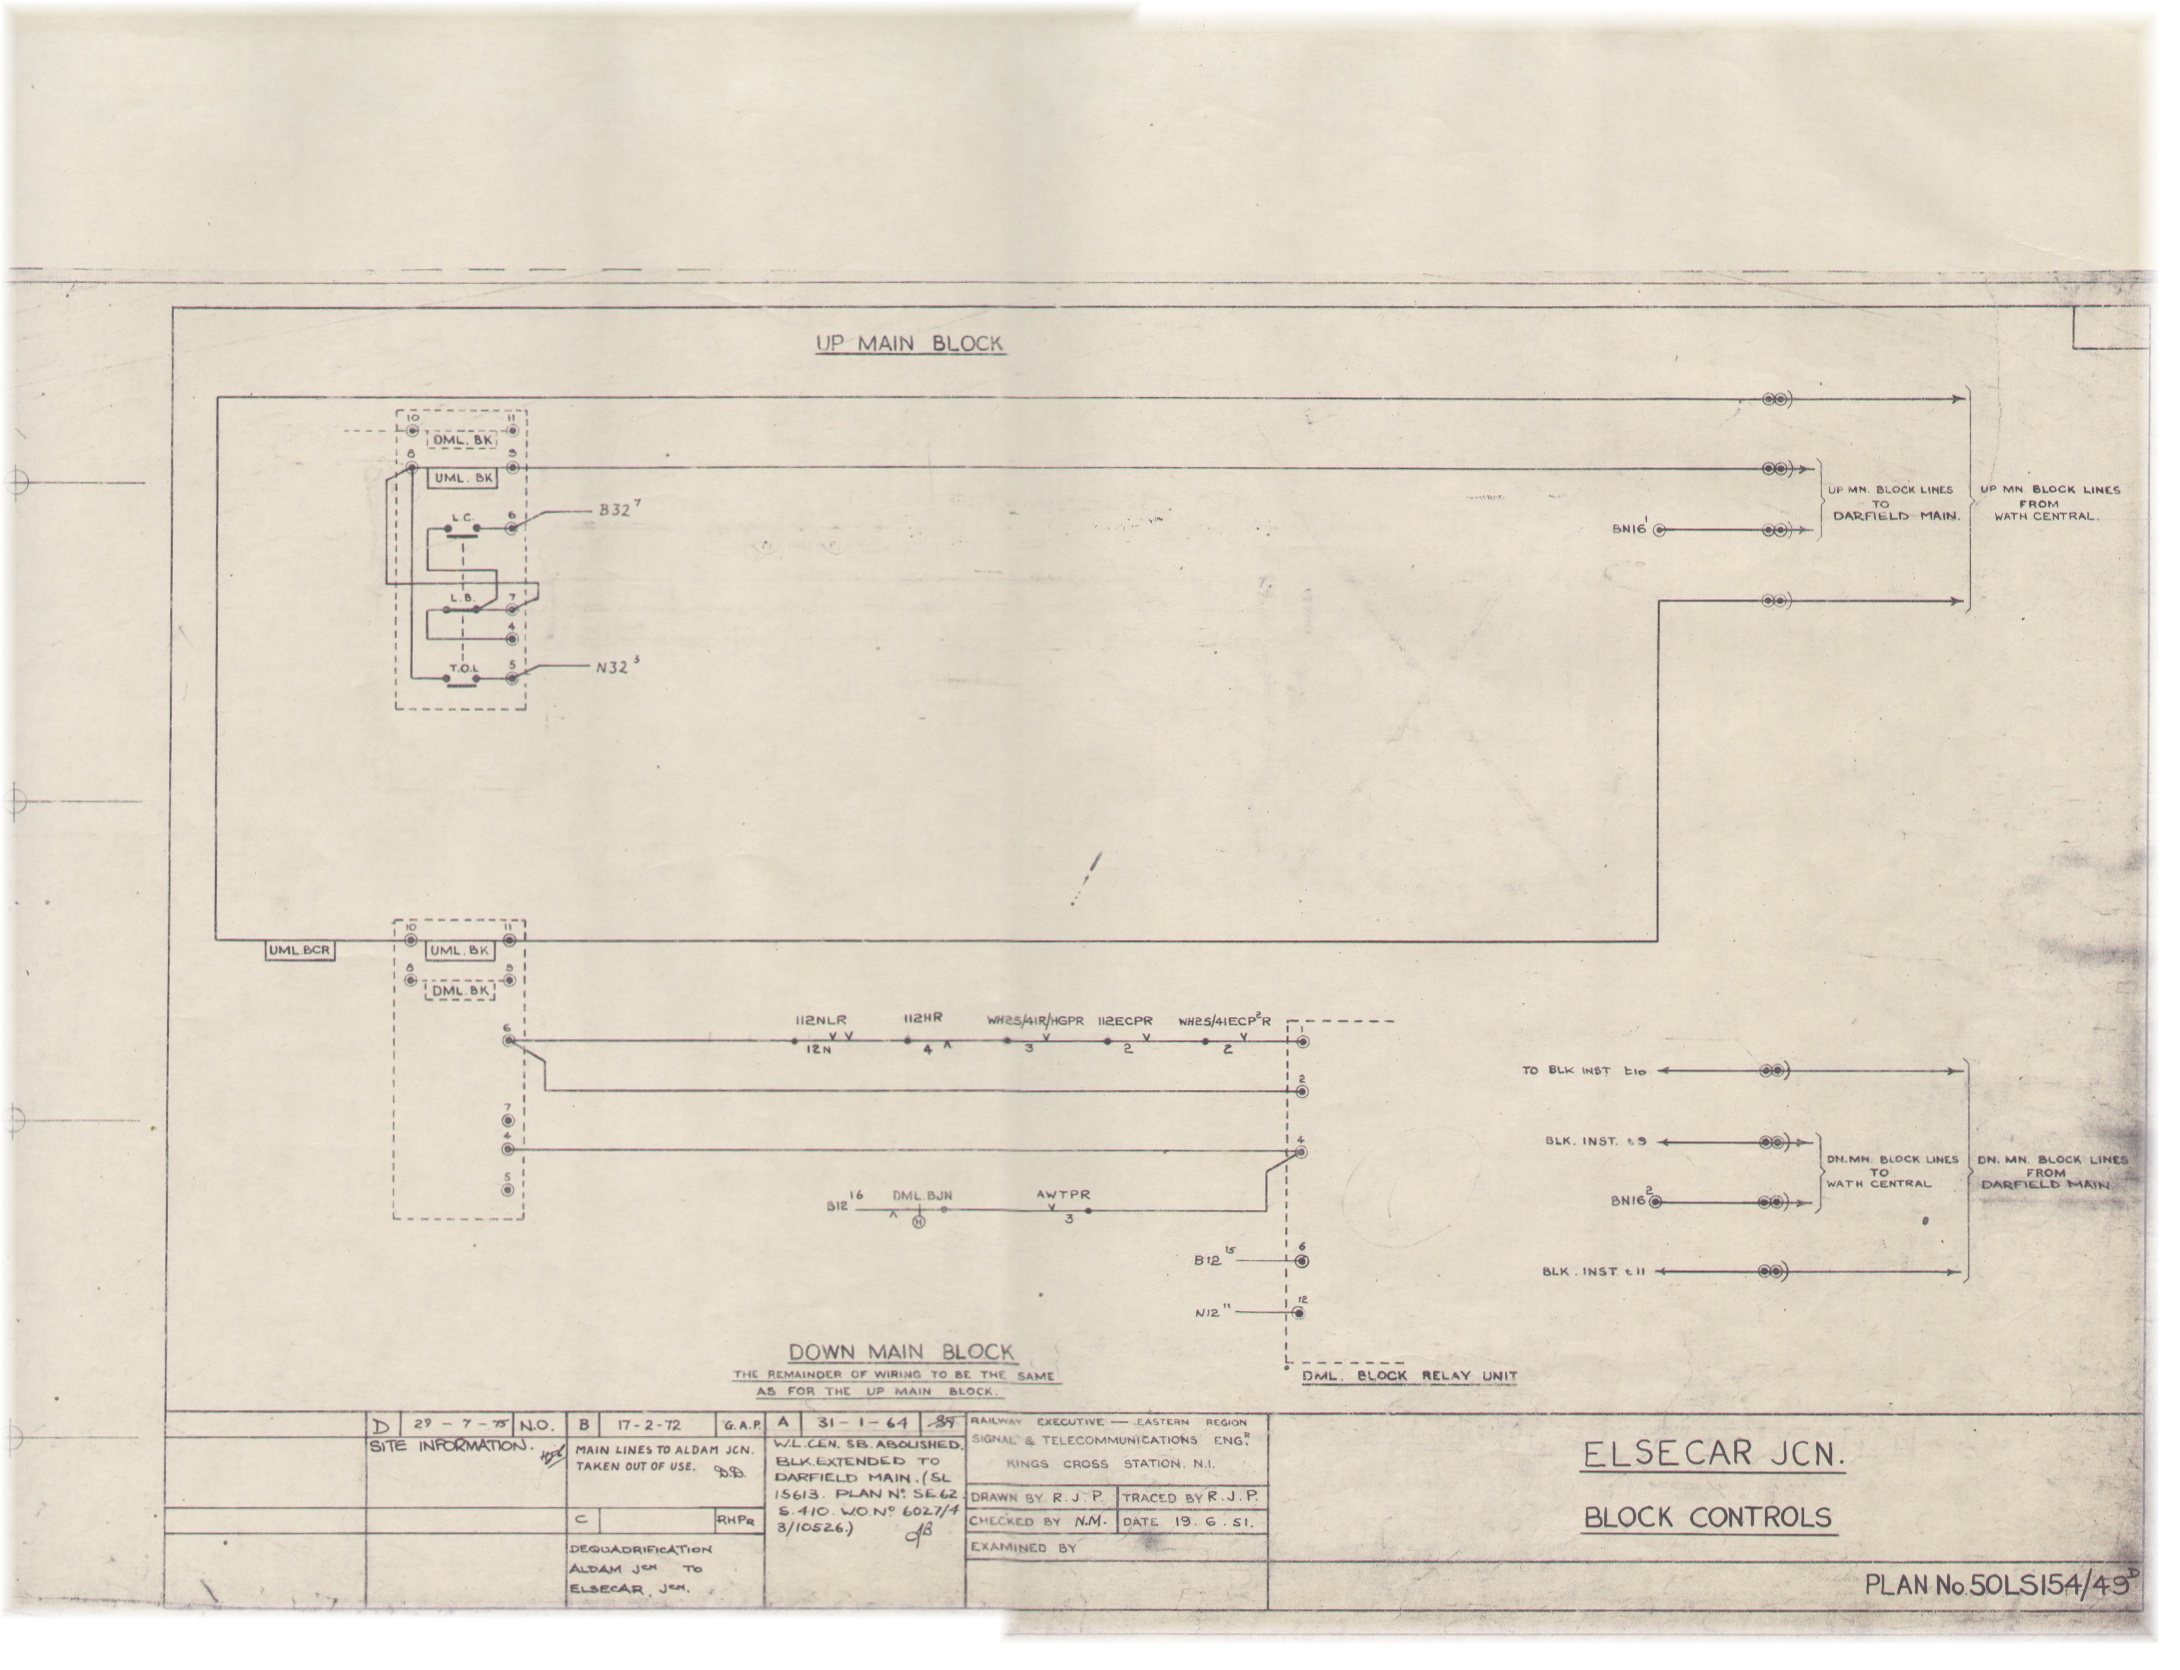 Lner Block Instruments Relay Circuit Theory Sometimes It Was Wired Without Any Controls Free